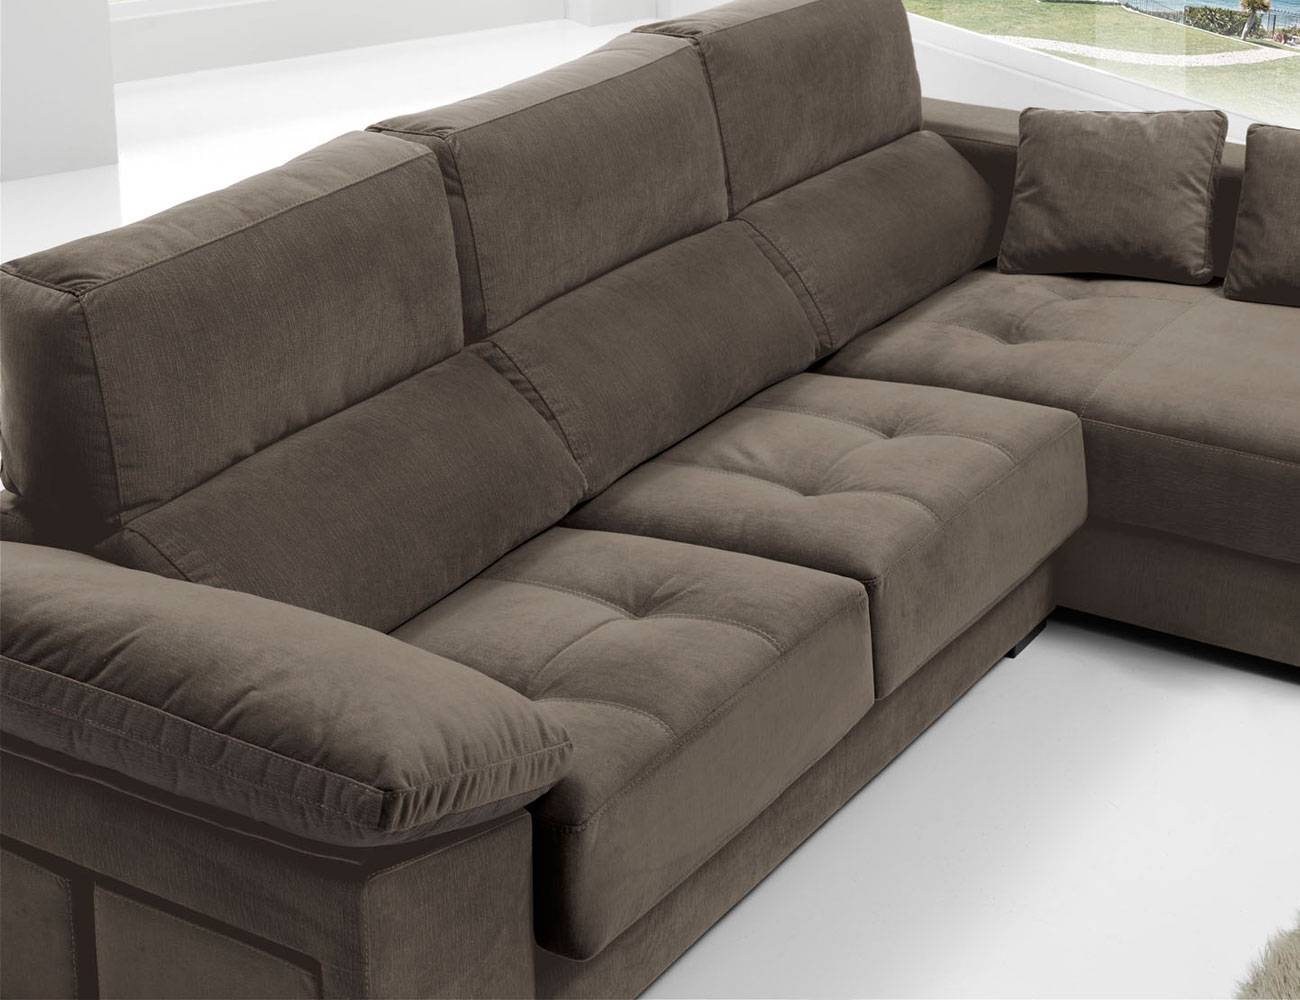 Sofa chaiselongue anti manchas bering pouf 27